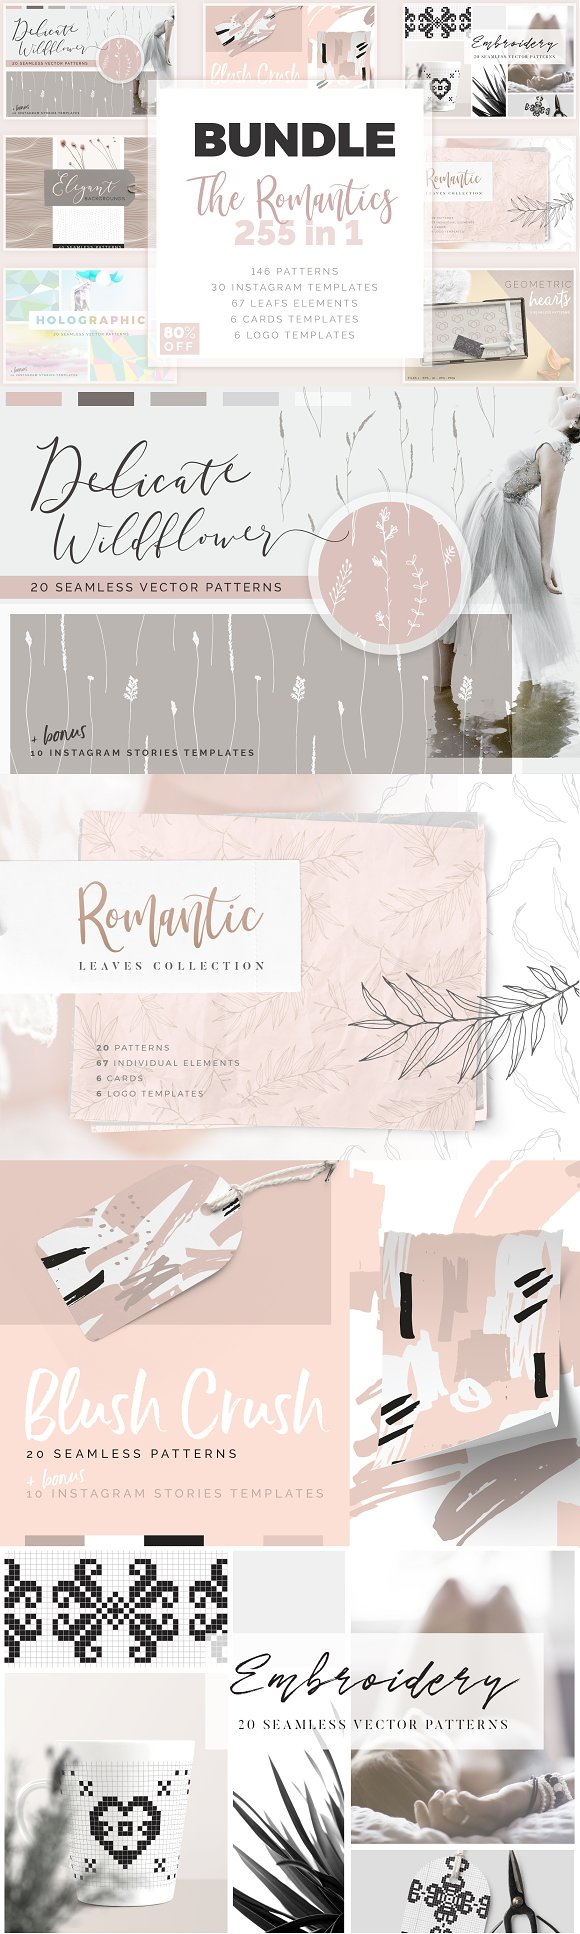 The Romantics Patterns Bundle